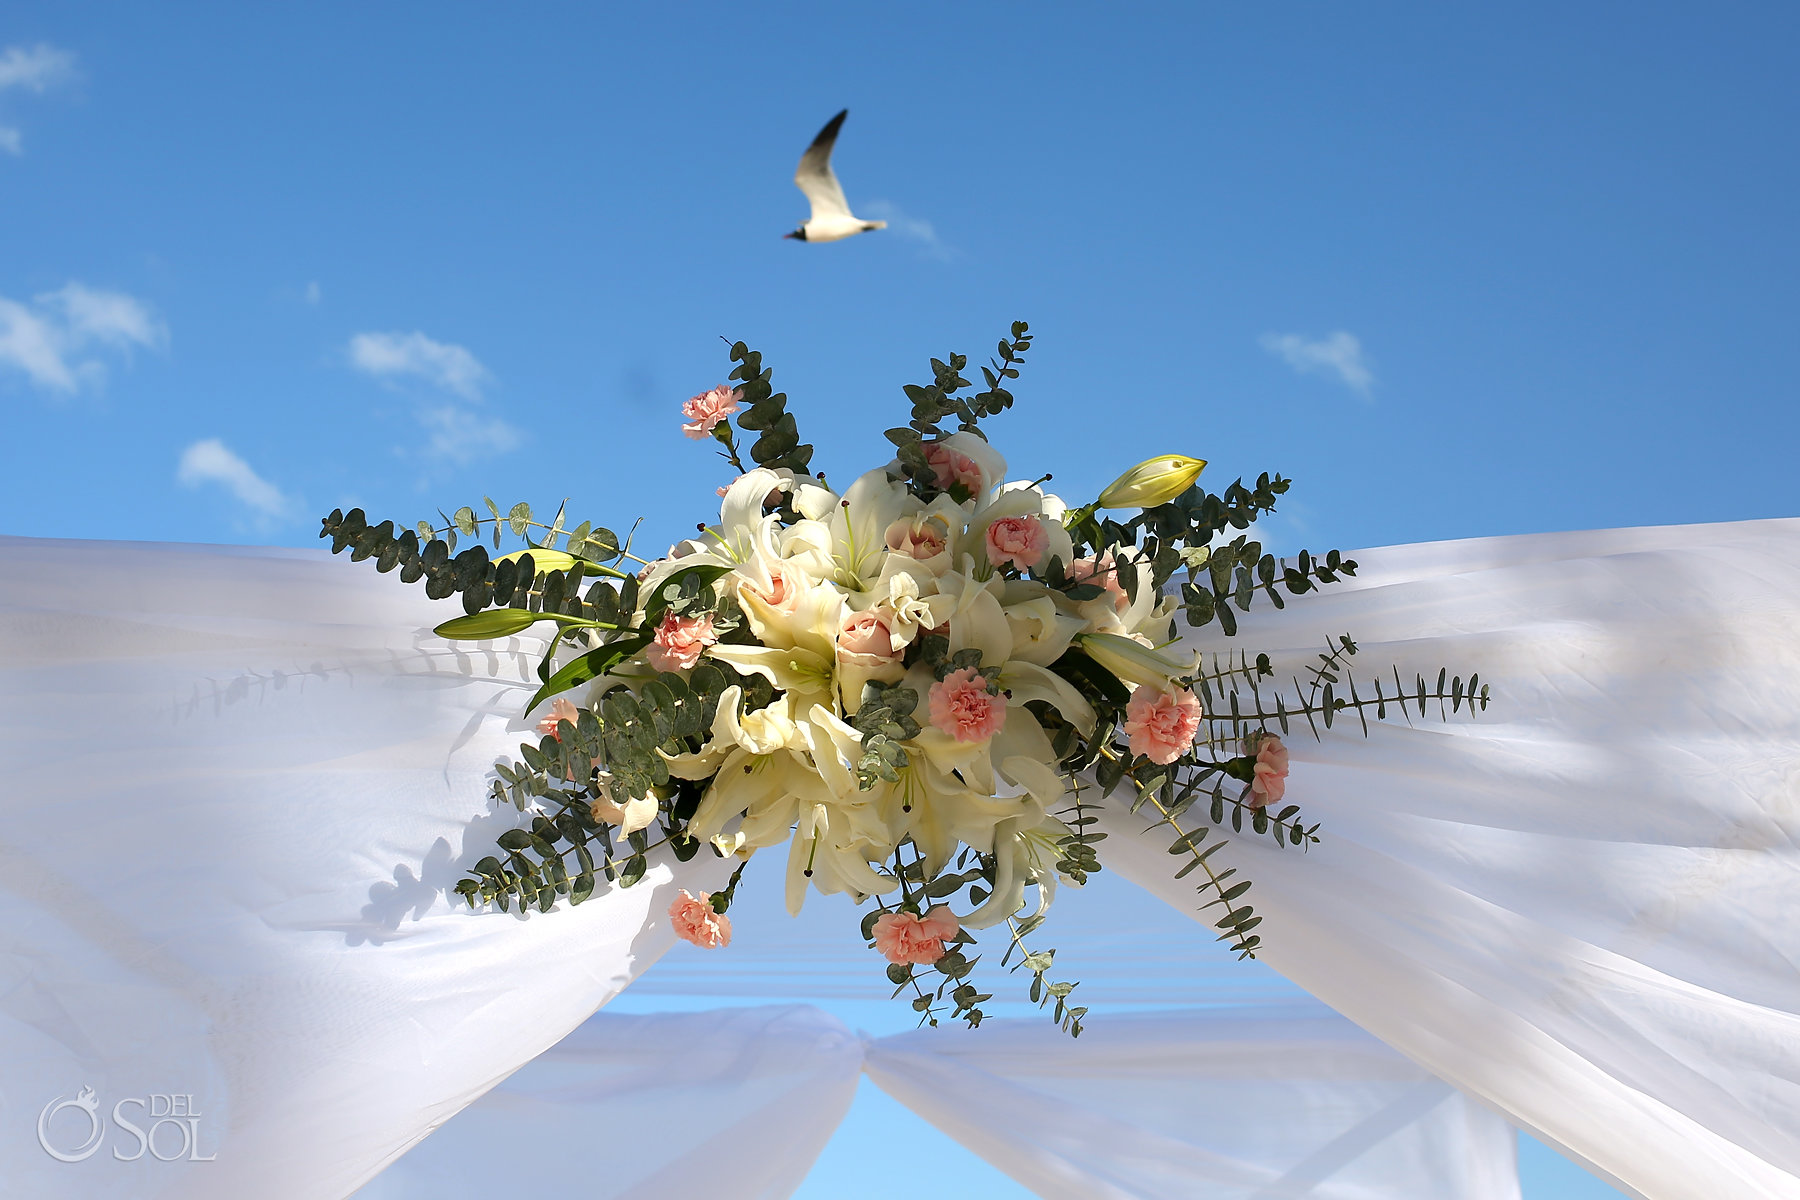 lilies roses carnations wedding decoration best elopement locations Mexico Blue Diamond Luxury Boutique Hotel